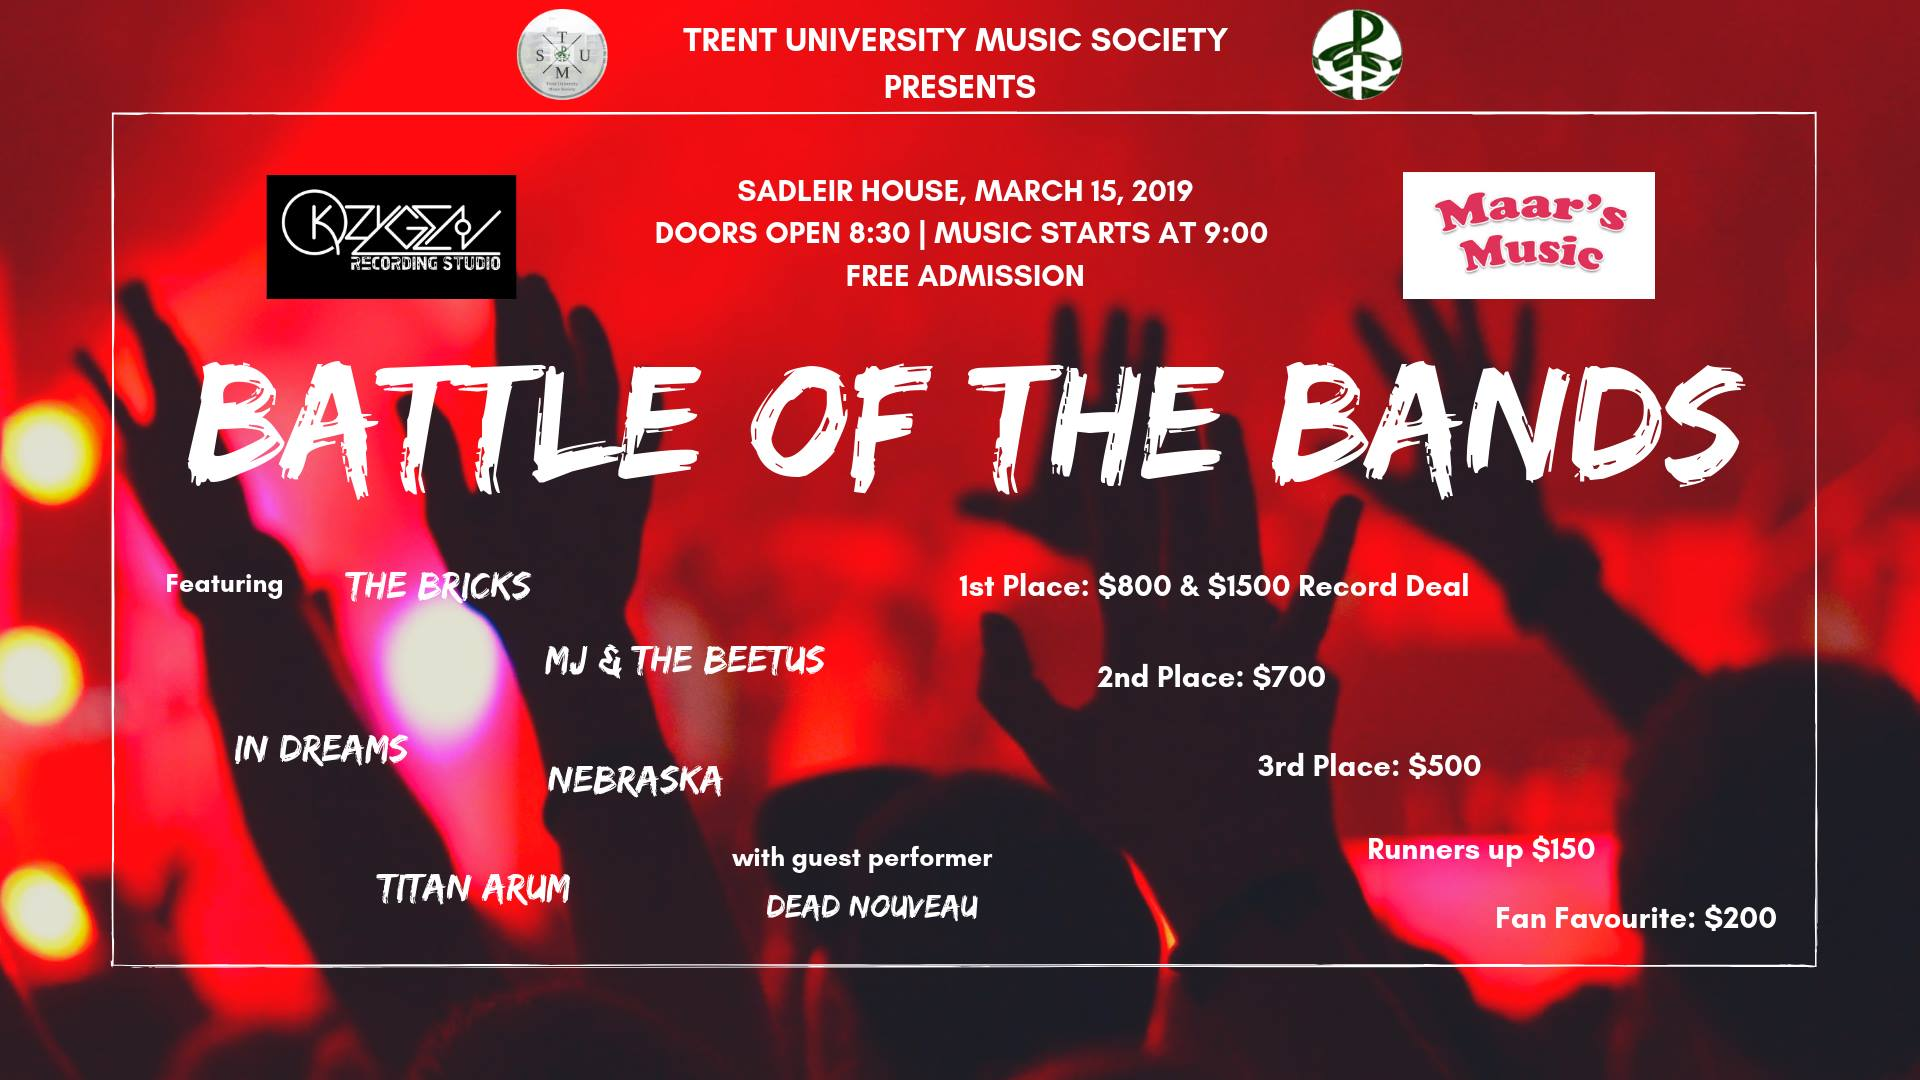 Battle of the Bands 2019: Real Rock n' Roll